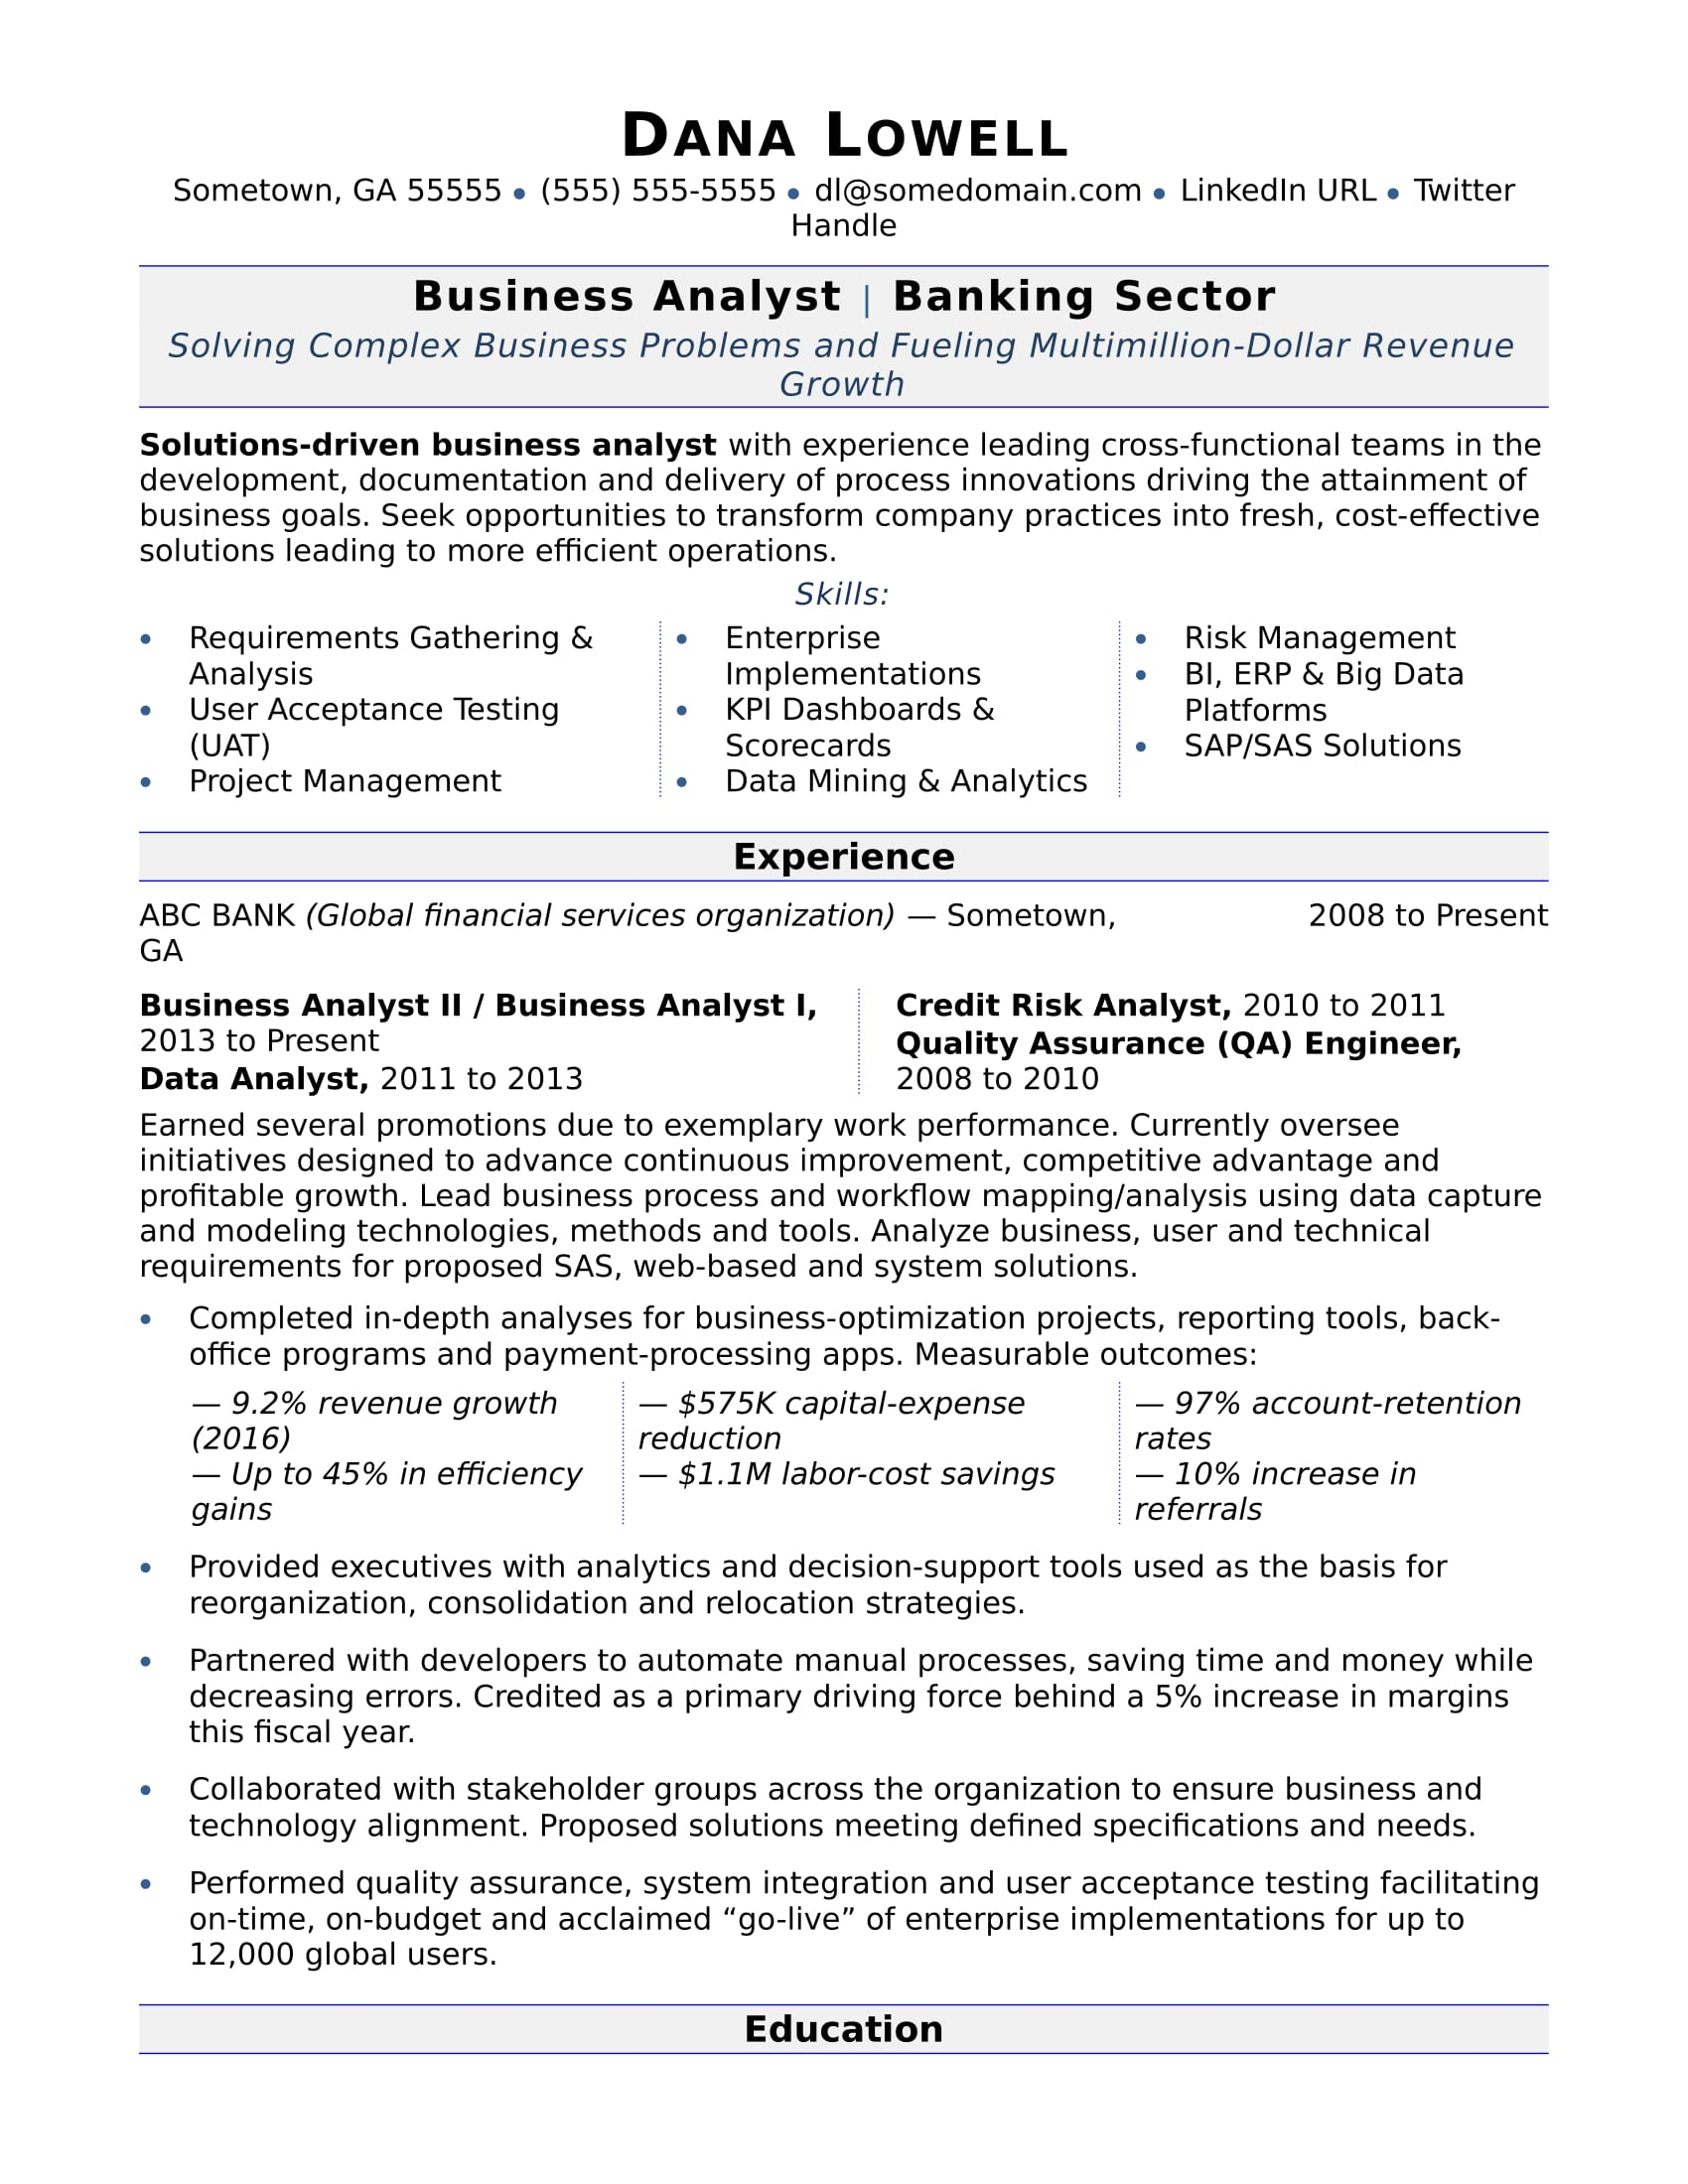 Market risk manager resume